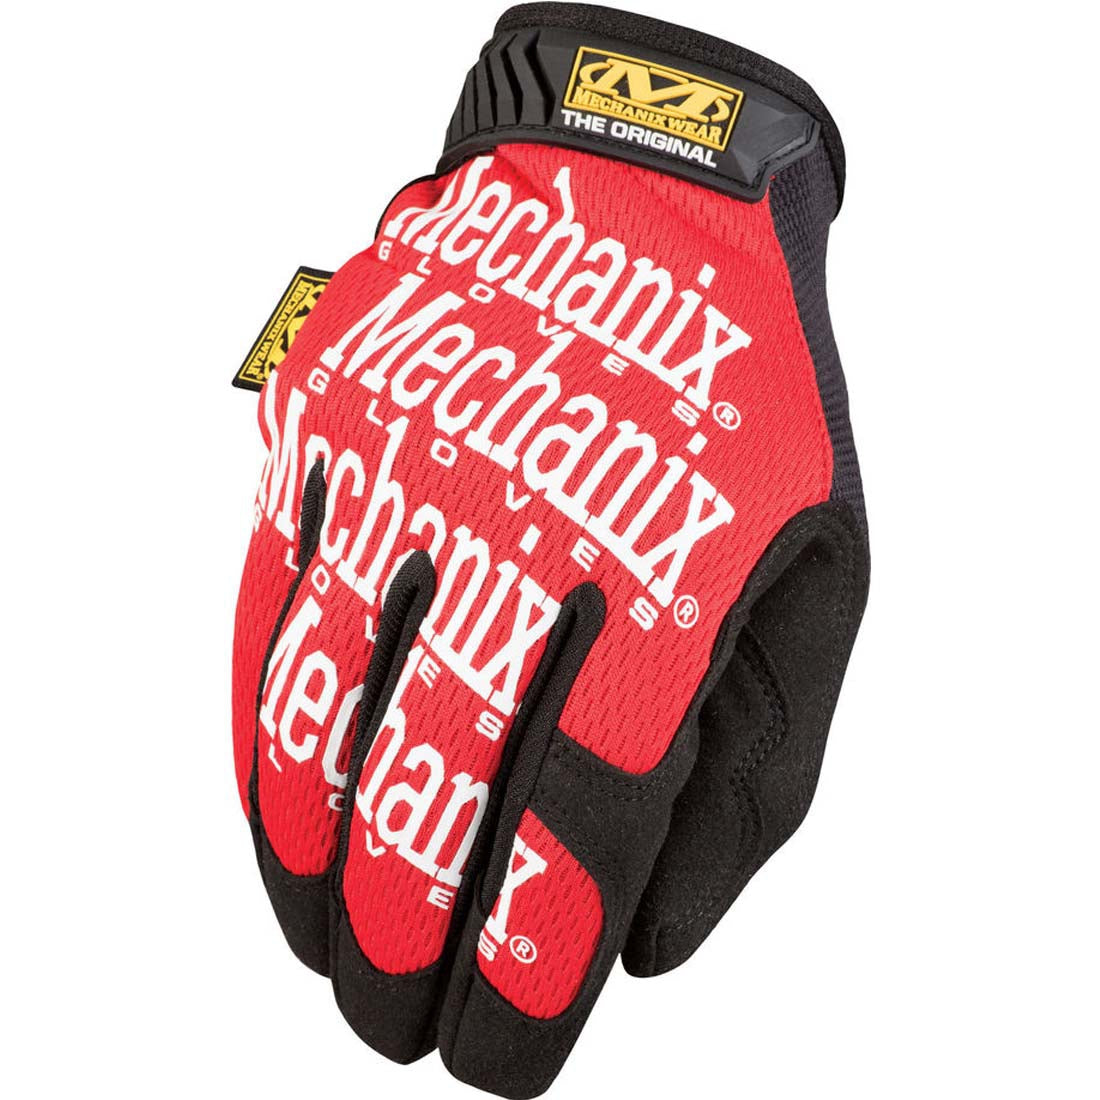 Mechanix Wear MG-02-008 Red The Original Work Gloves - Small